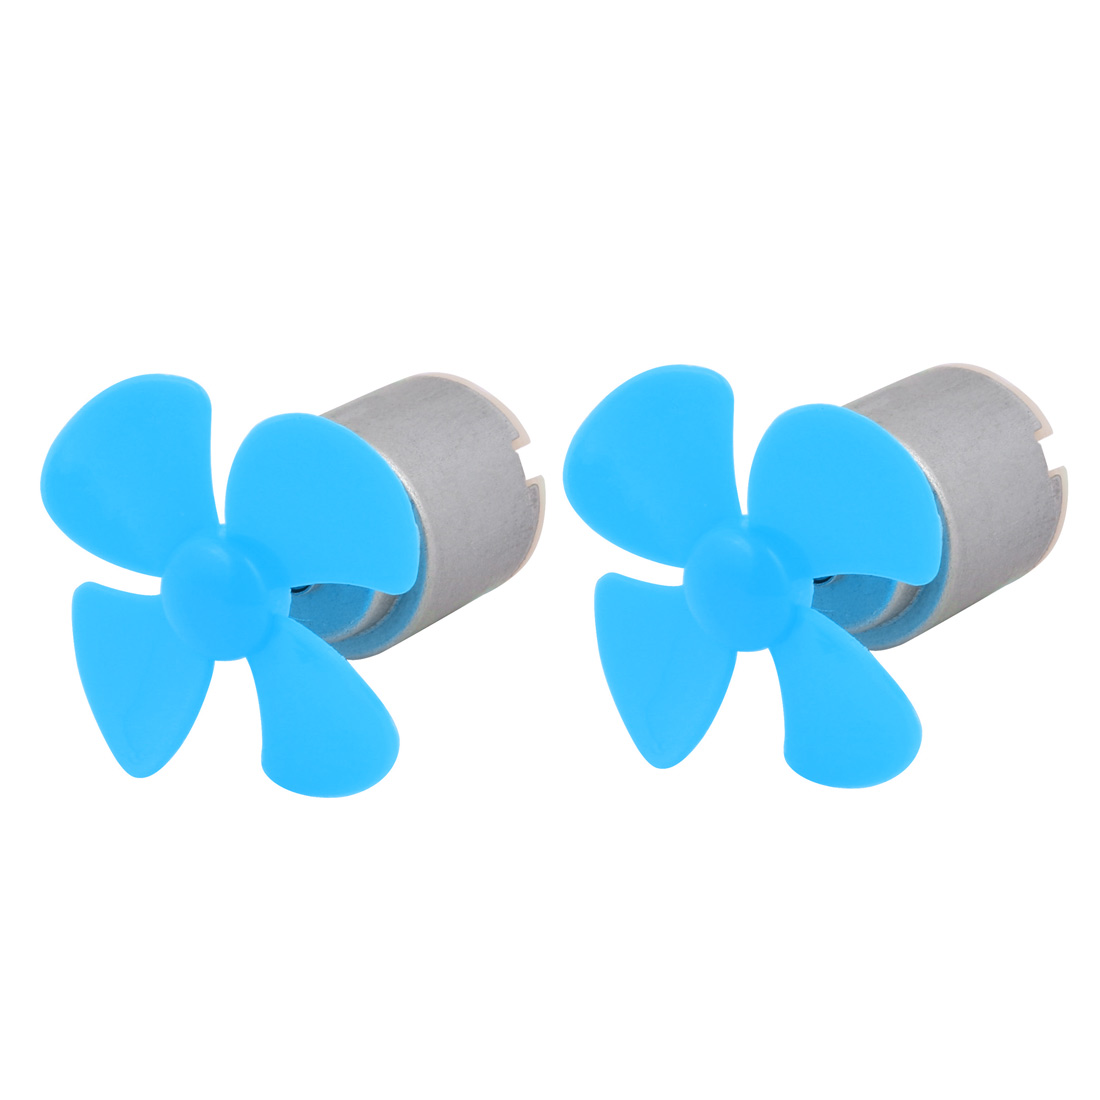 2pcs DC 3V 0.13A 13000RPM Strong Force Motor 4 Blades 40mm Blue Propeller for RC Aircraft